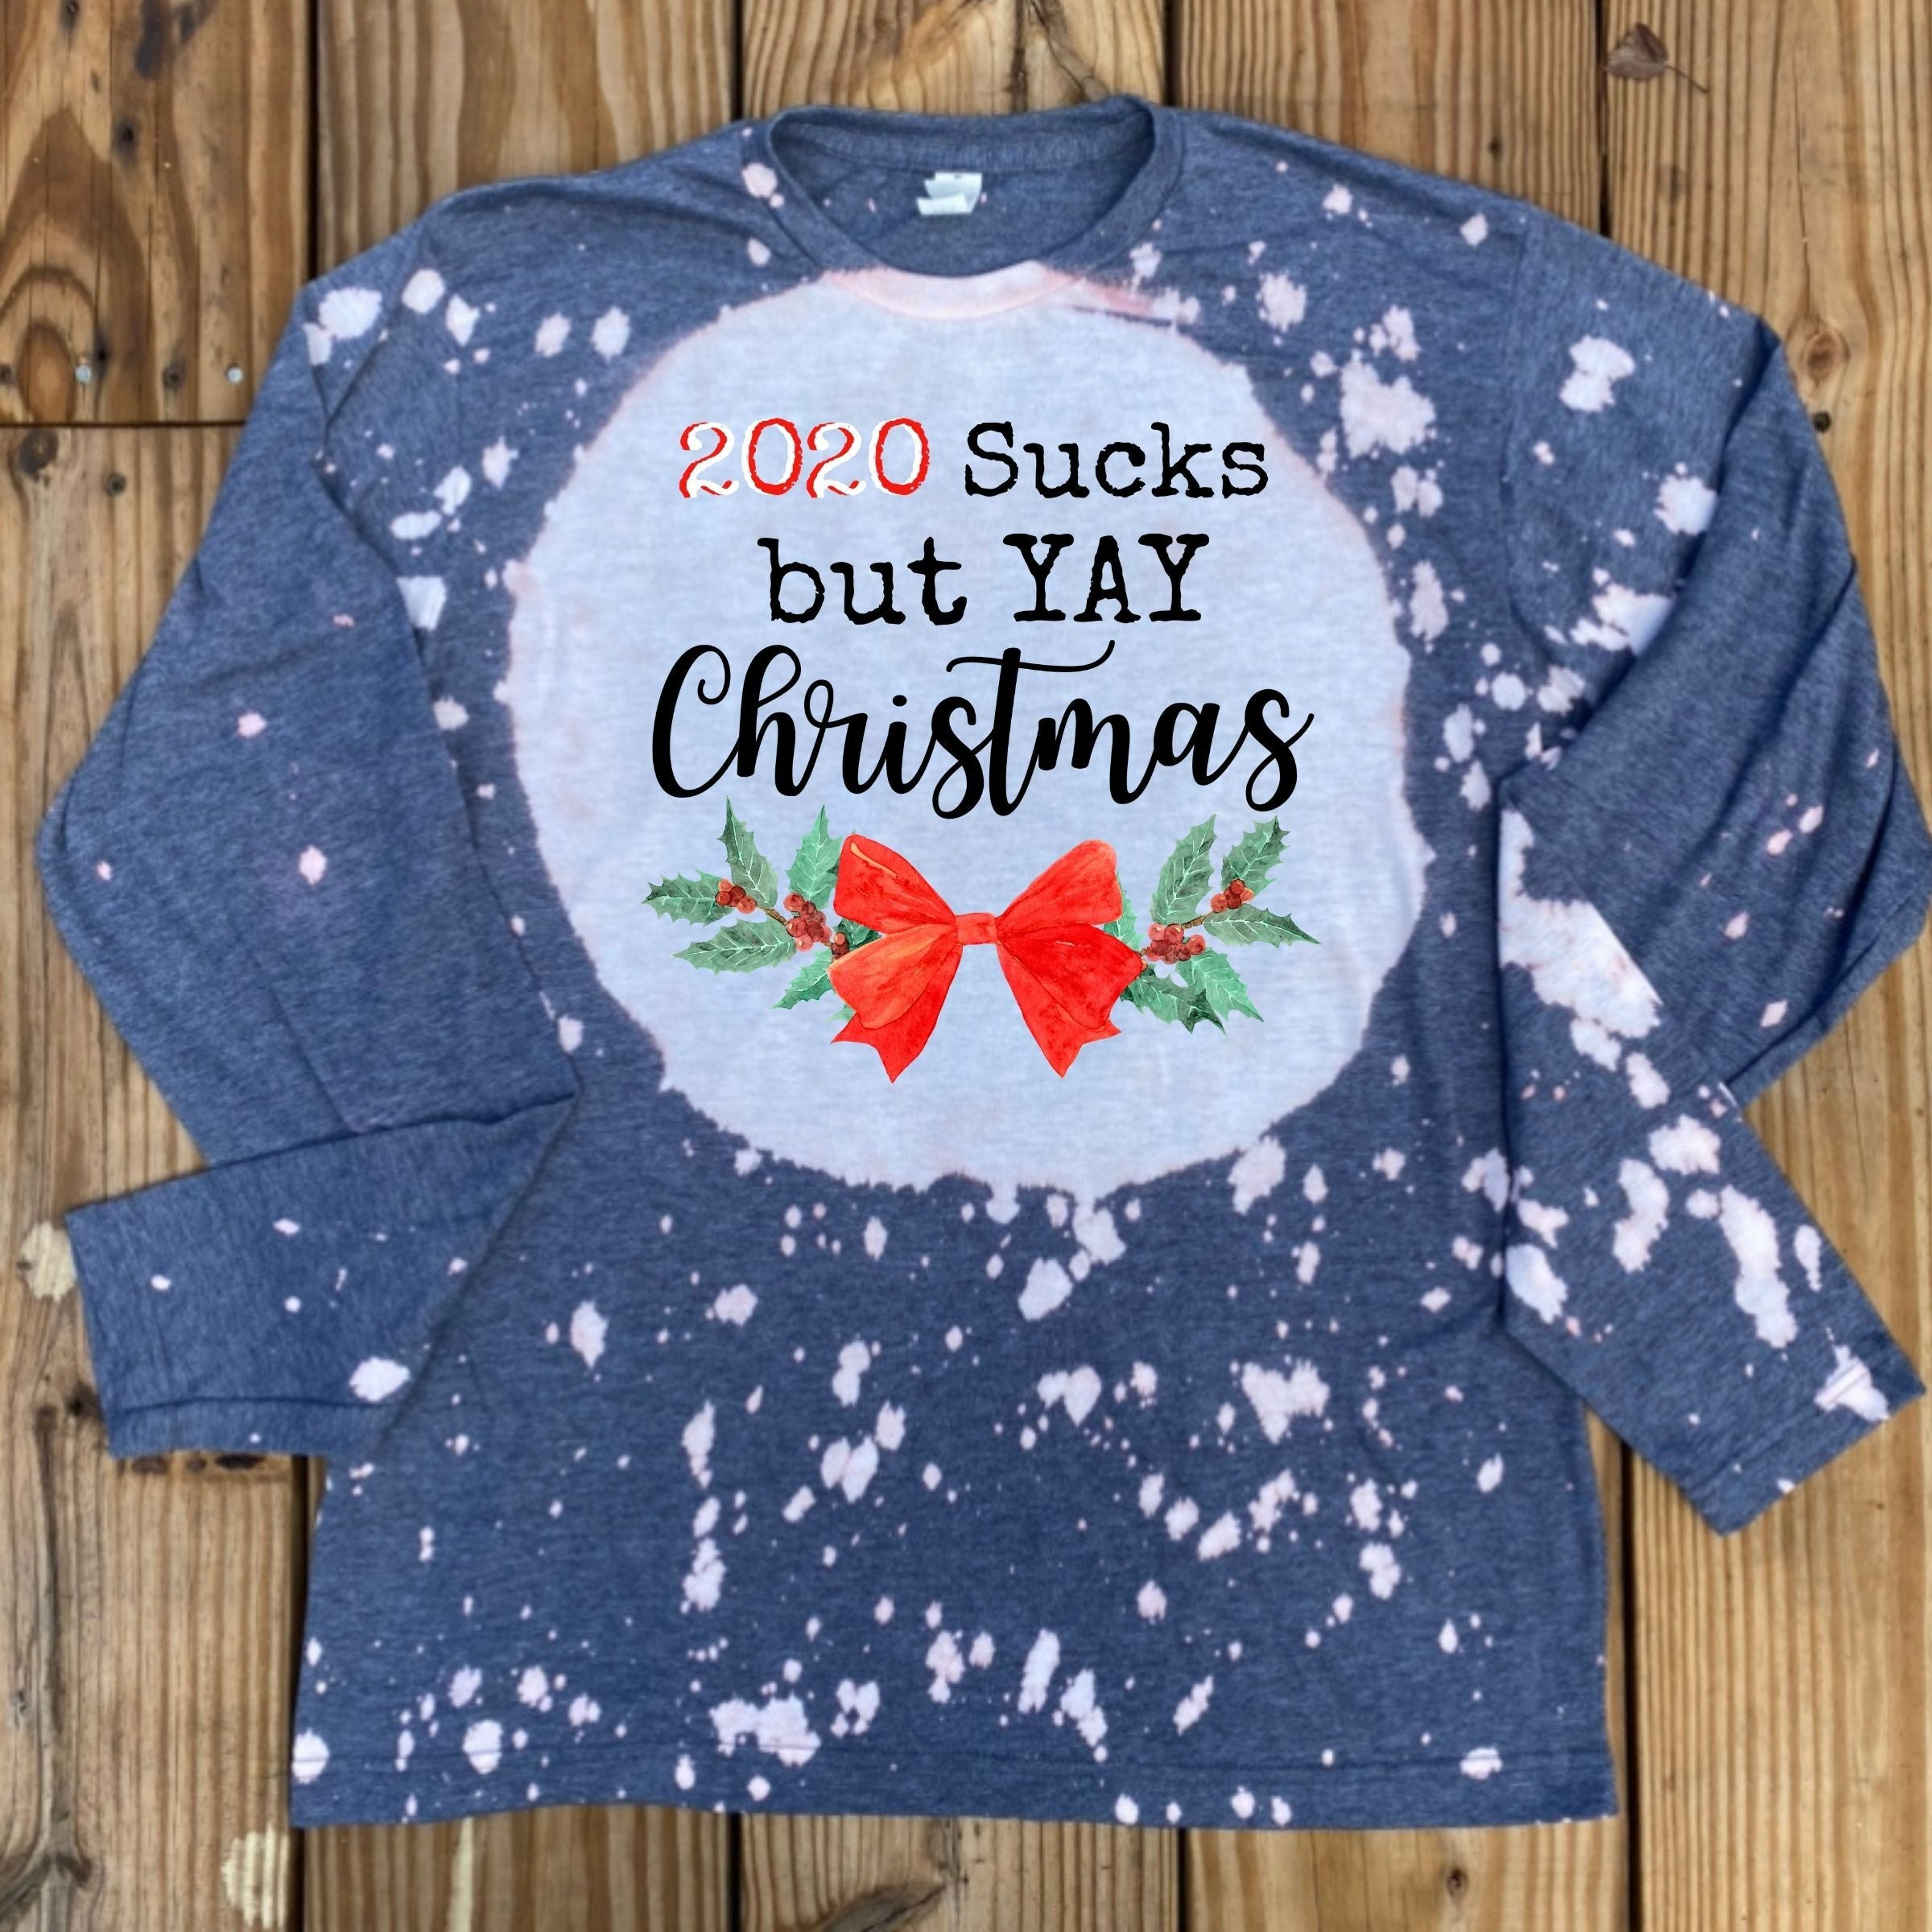 S - 2020 Sucks But Yay Christmas- Bleached Carolina Blue -Long Sleeve-1014, Seasonal-Shop-Wholesale-Womens-Boutique-Custom-Graphic-Tees-Branding-Gifts